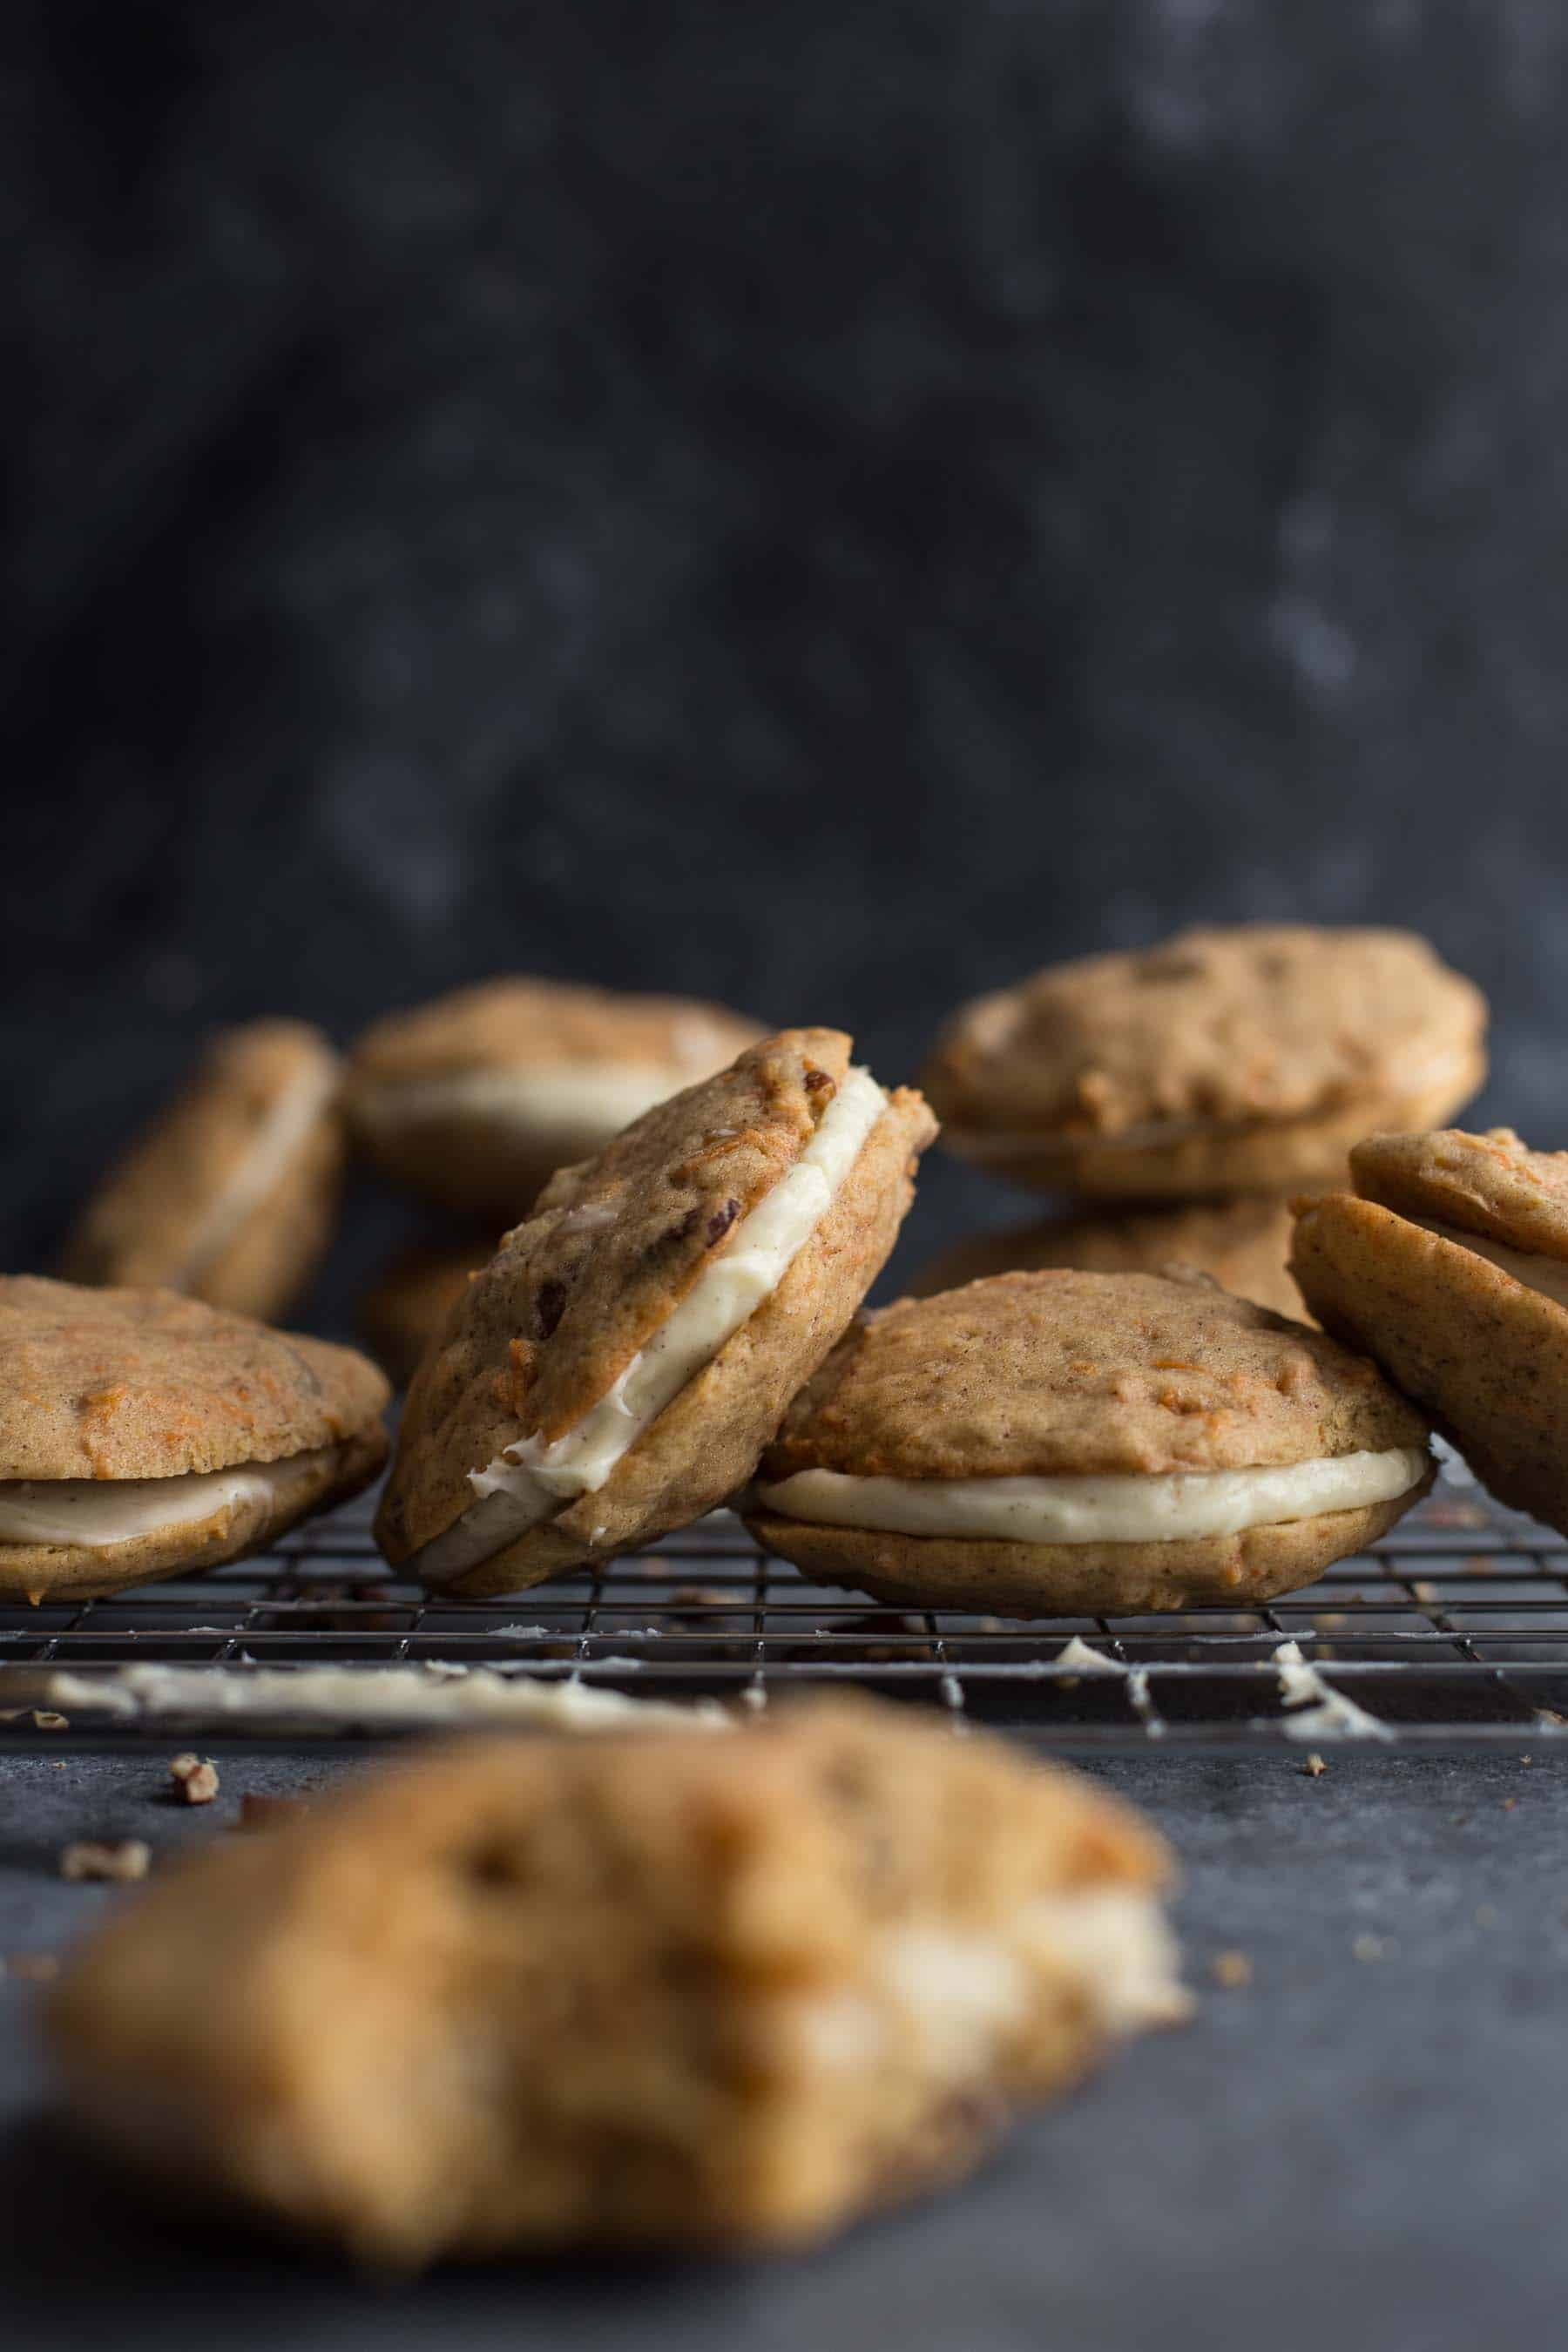 Photos of cookies with Manual White Balance 5450